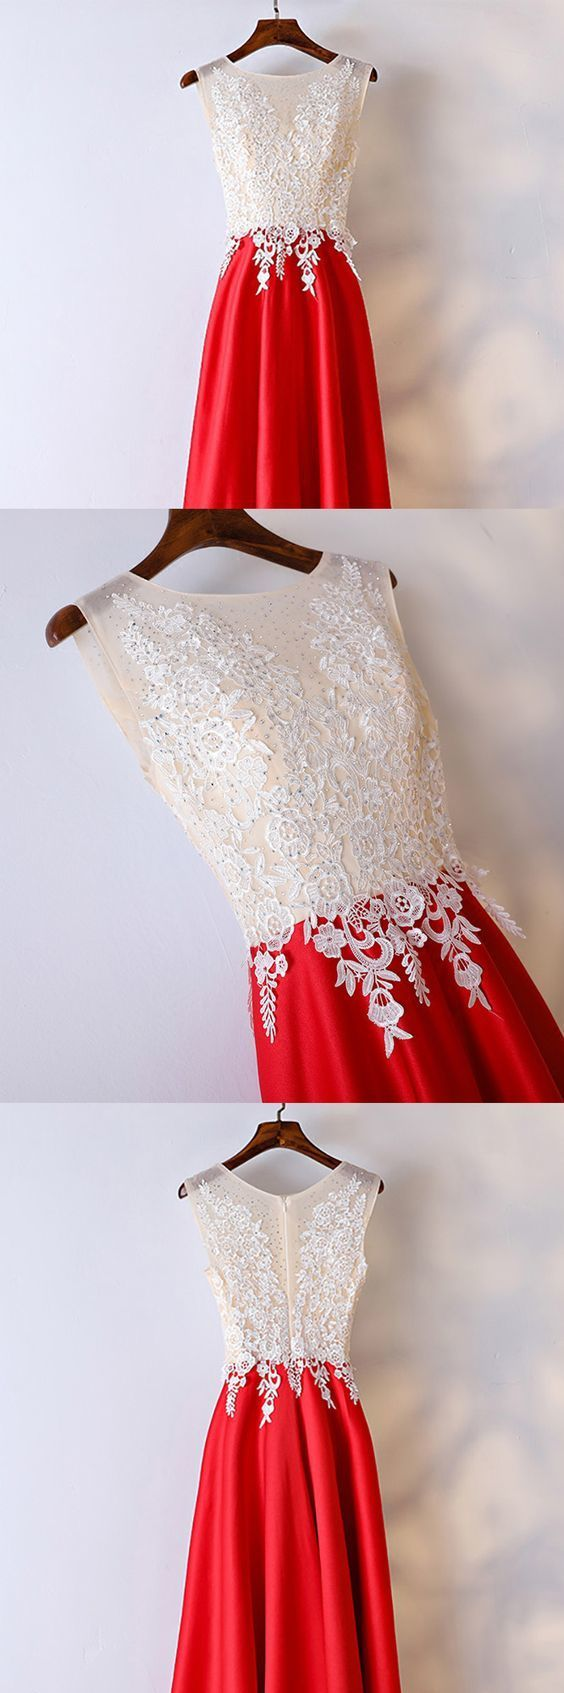 White And Red Lace Long Formal Dress For Women Prom Dresses